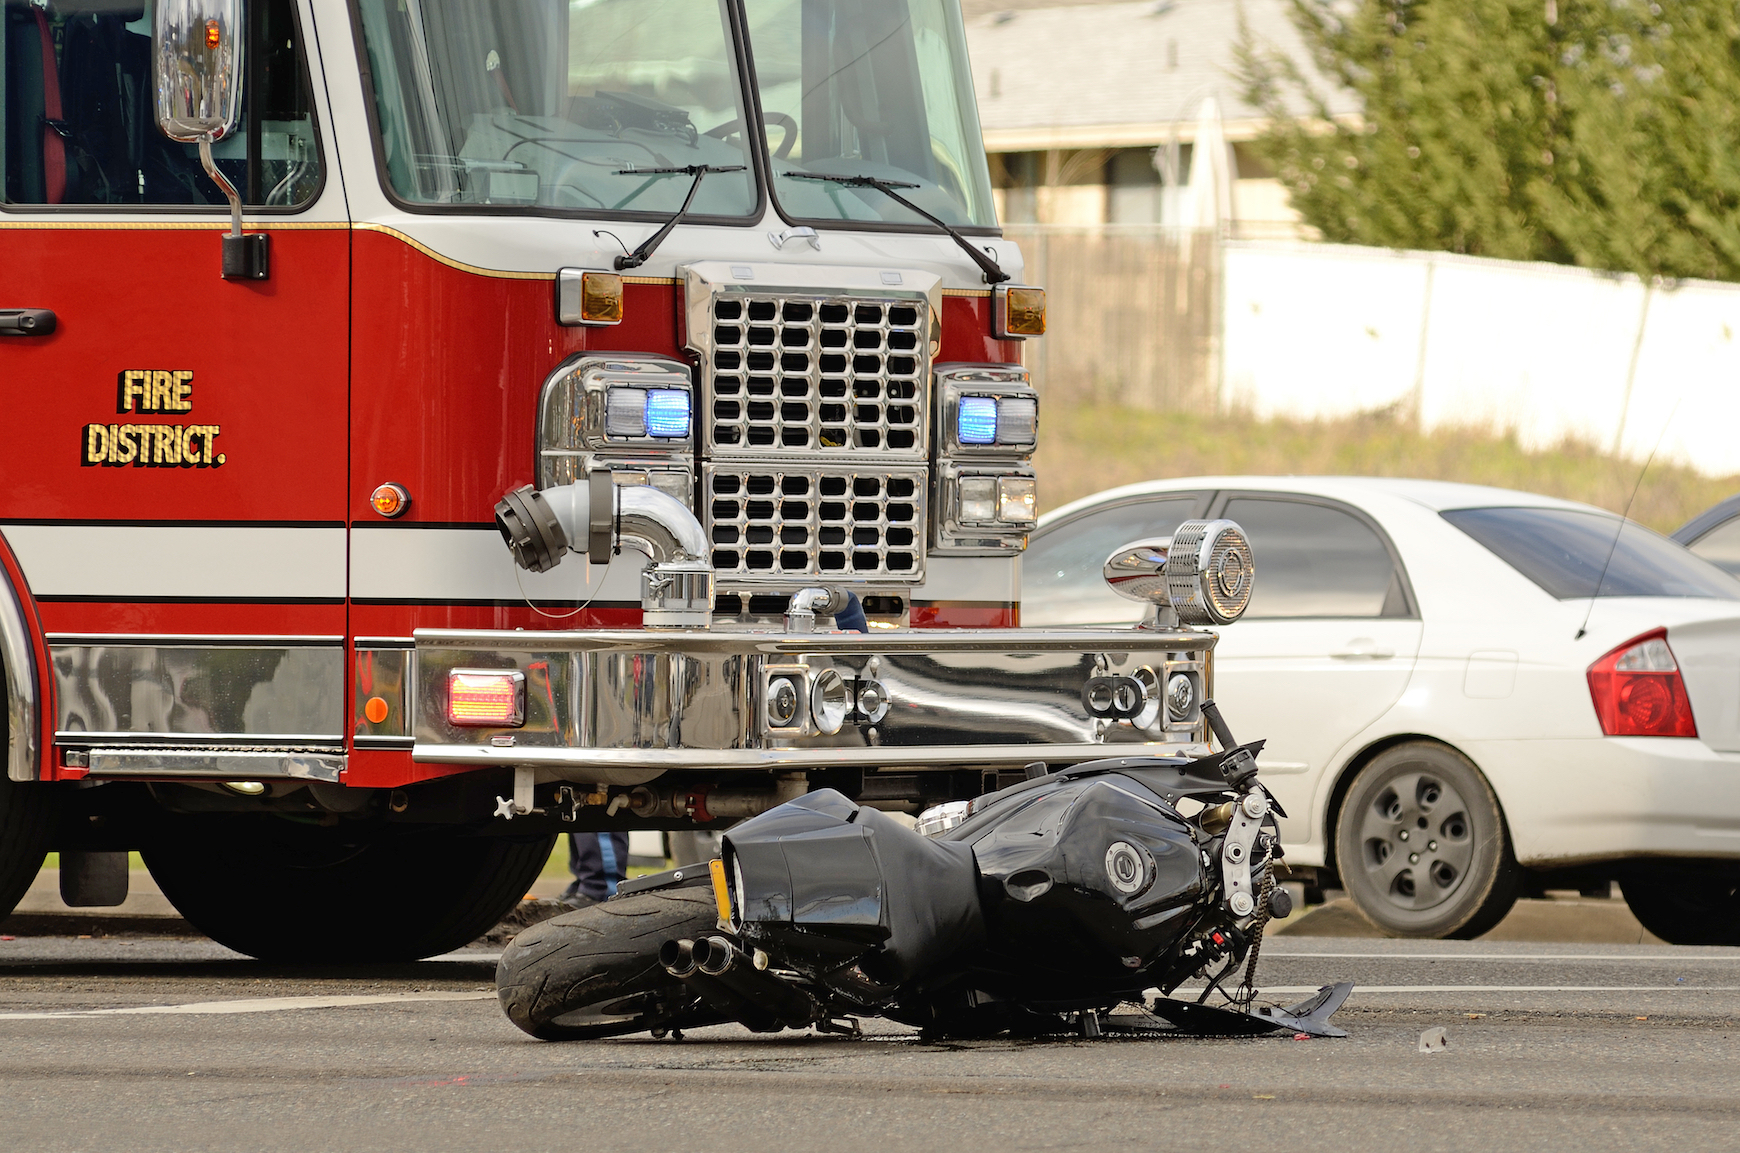 Motorcycle crashes cause five times as many deaths, three times as many injuries, and cost six times more in medical expenses.